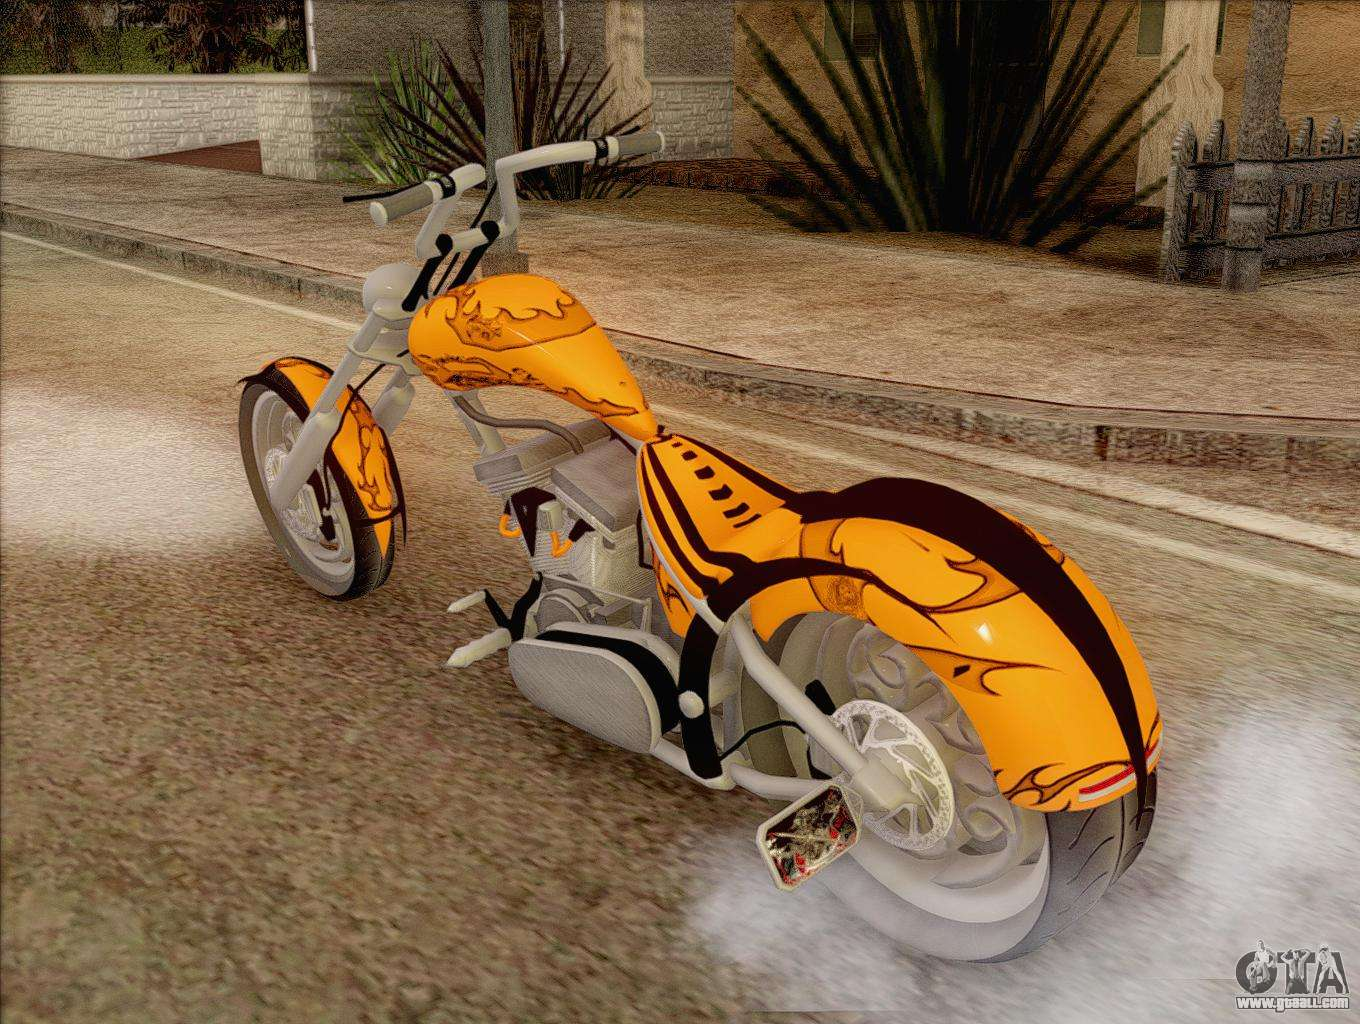 Chopper Bikes In Gta 5 Chopper Motorcycle for GTA